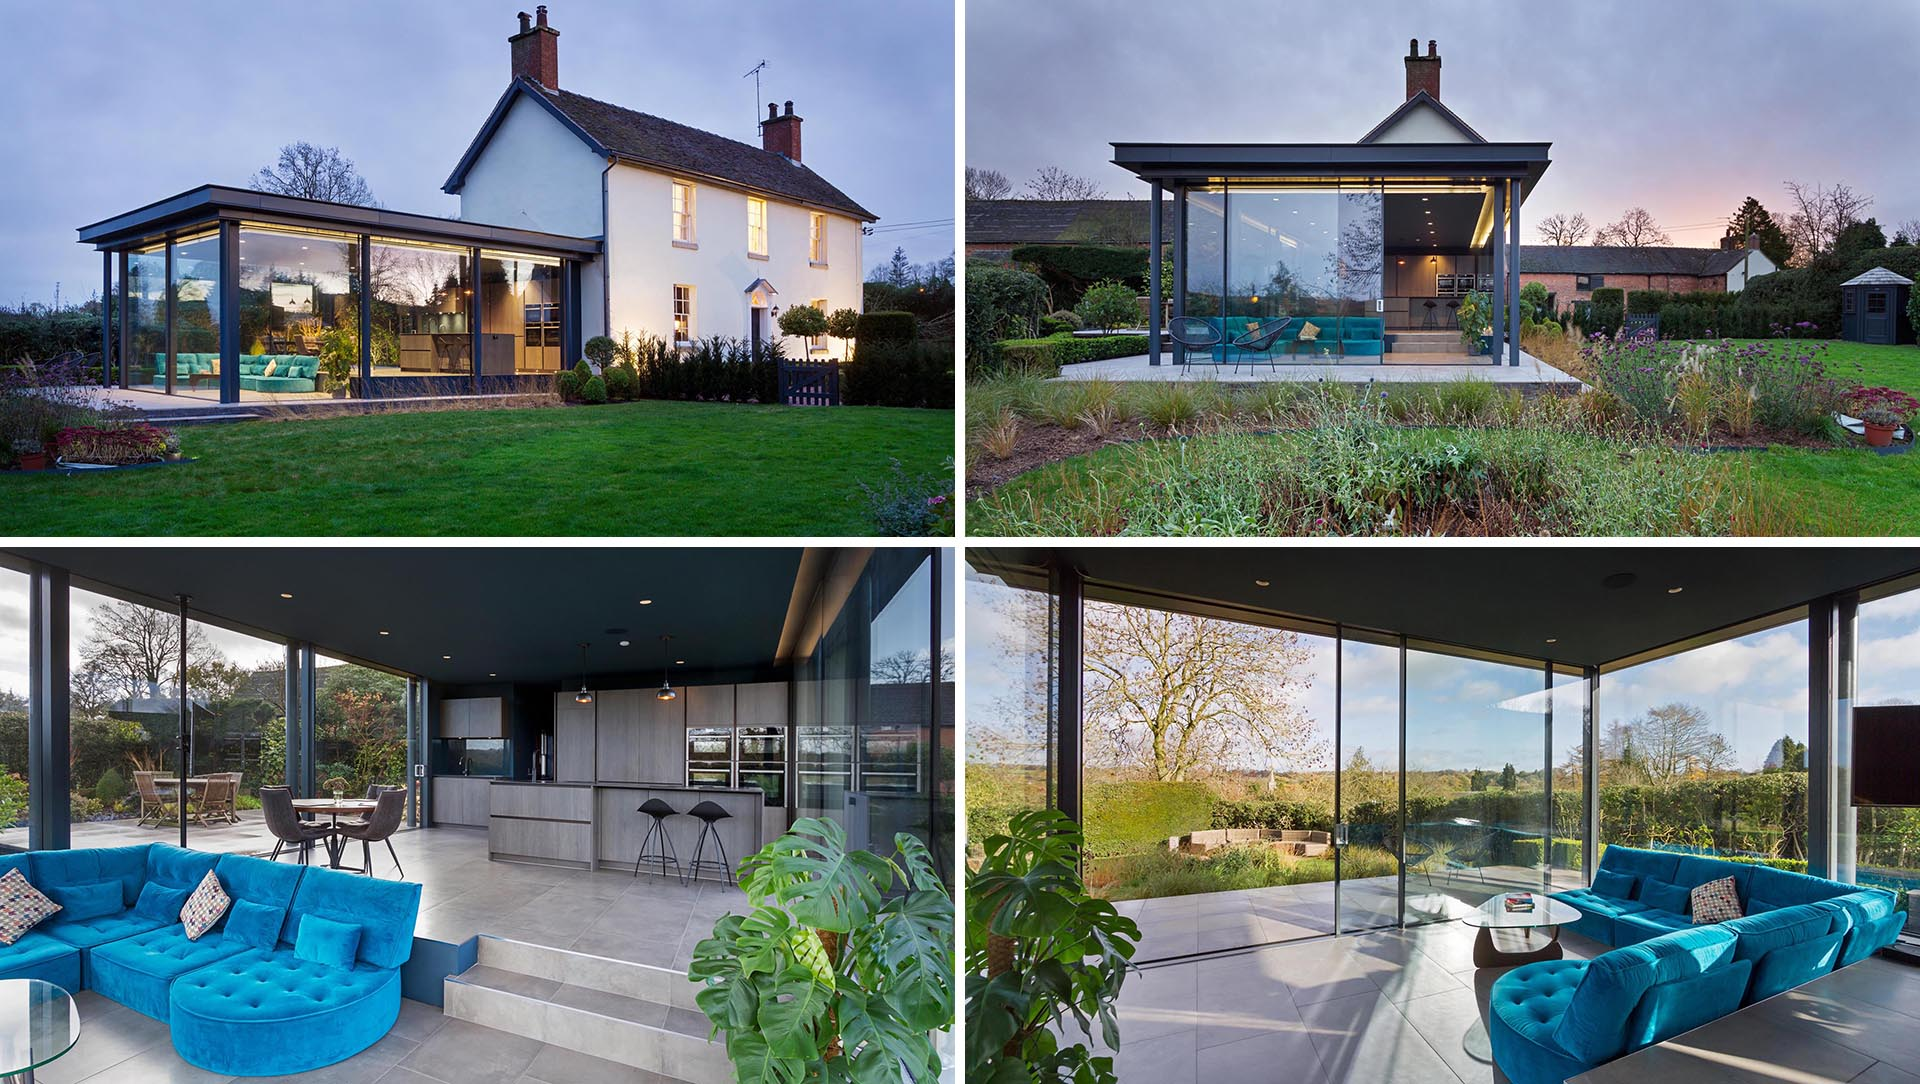 A modern glass enclosed extension with open living space was added to a heritage home in England.